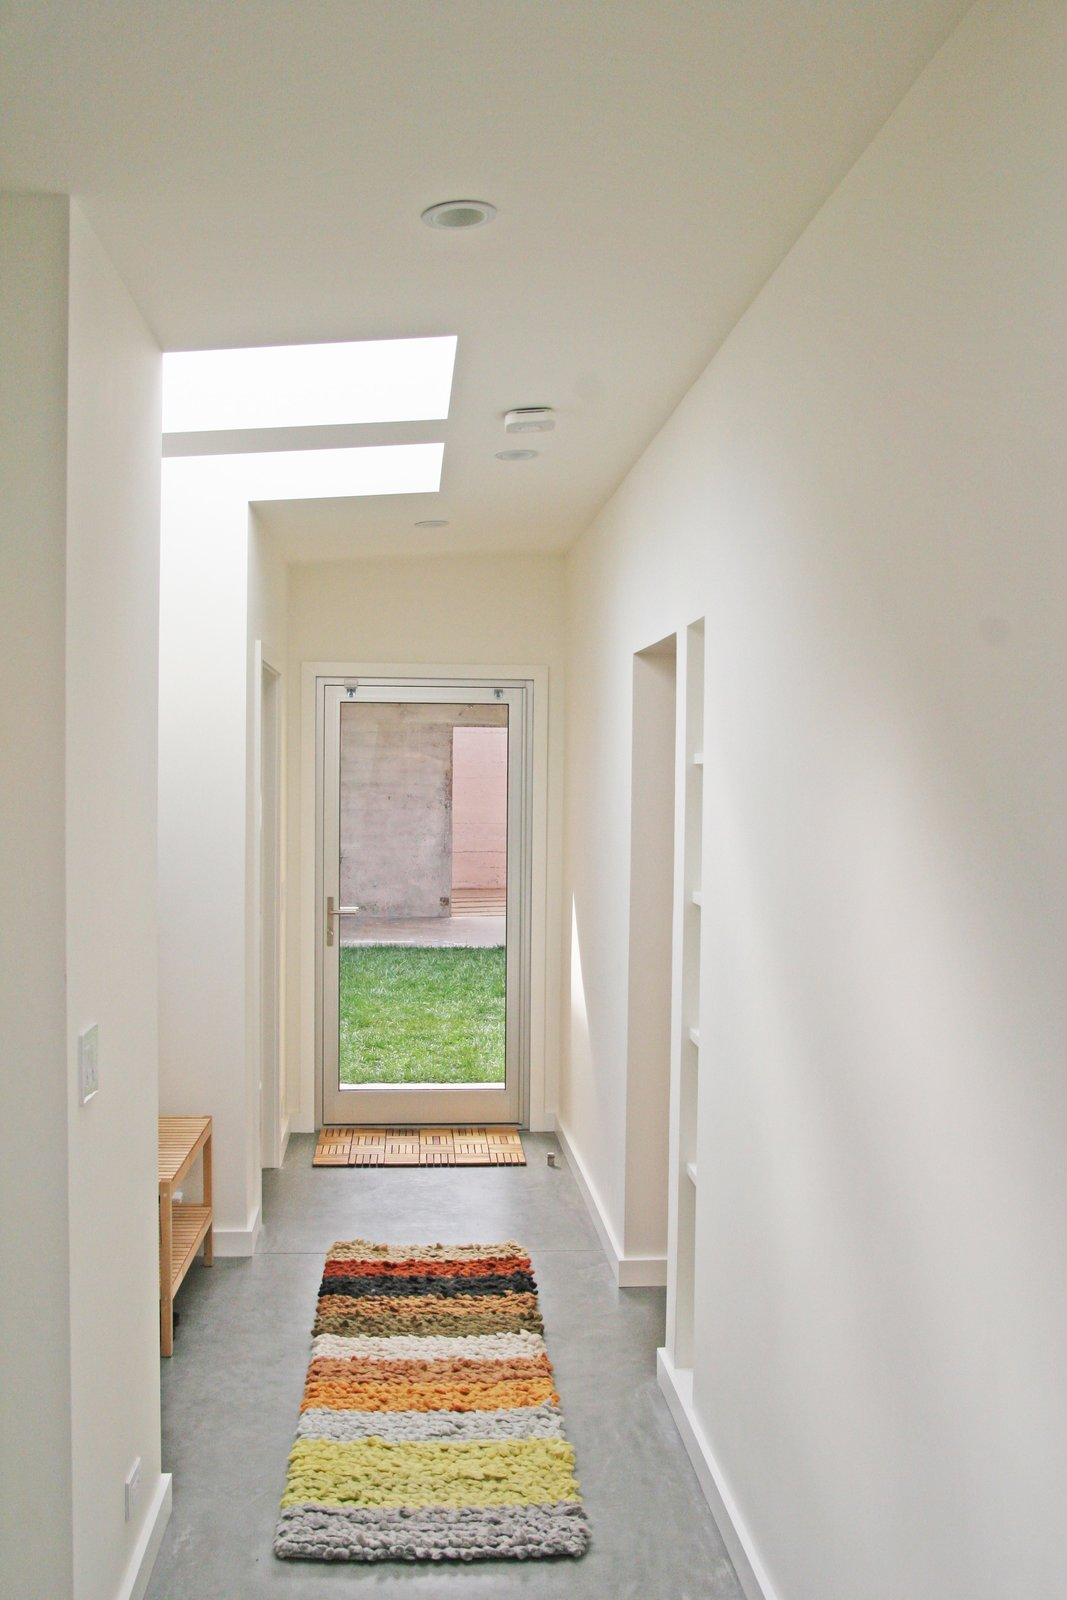 Hallway and Concrete Floor  Shotwell Residence by Todd Davis Architecture